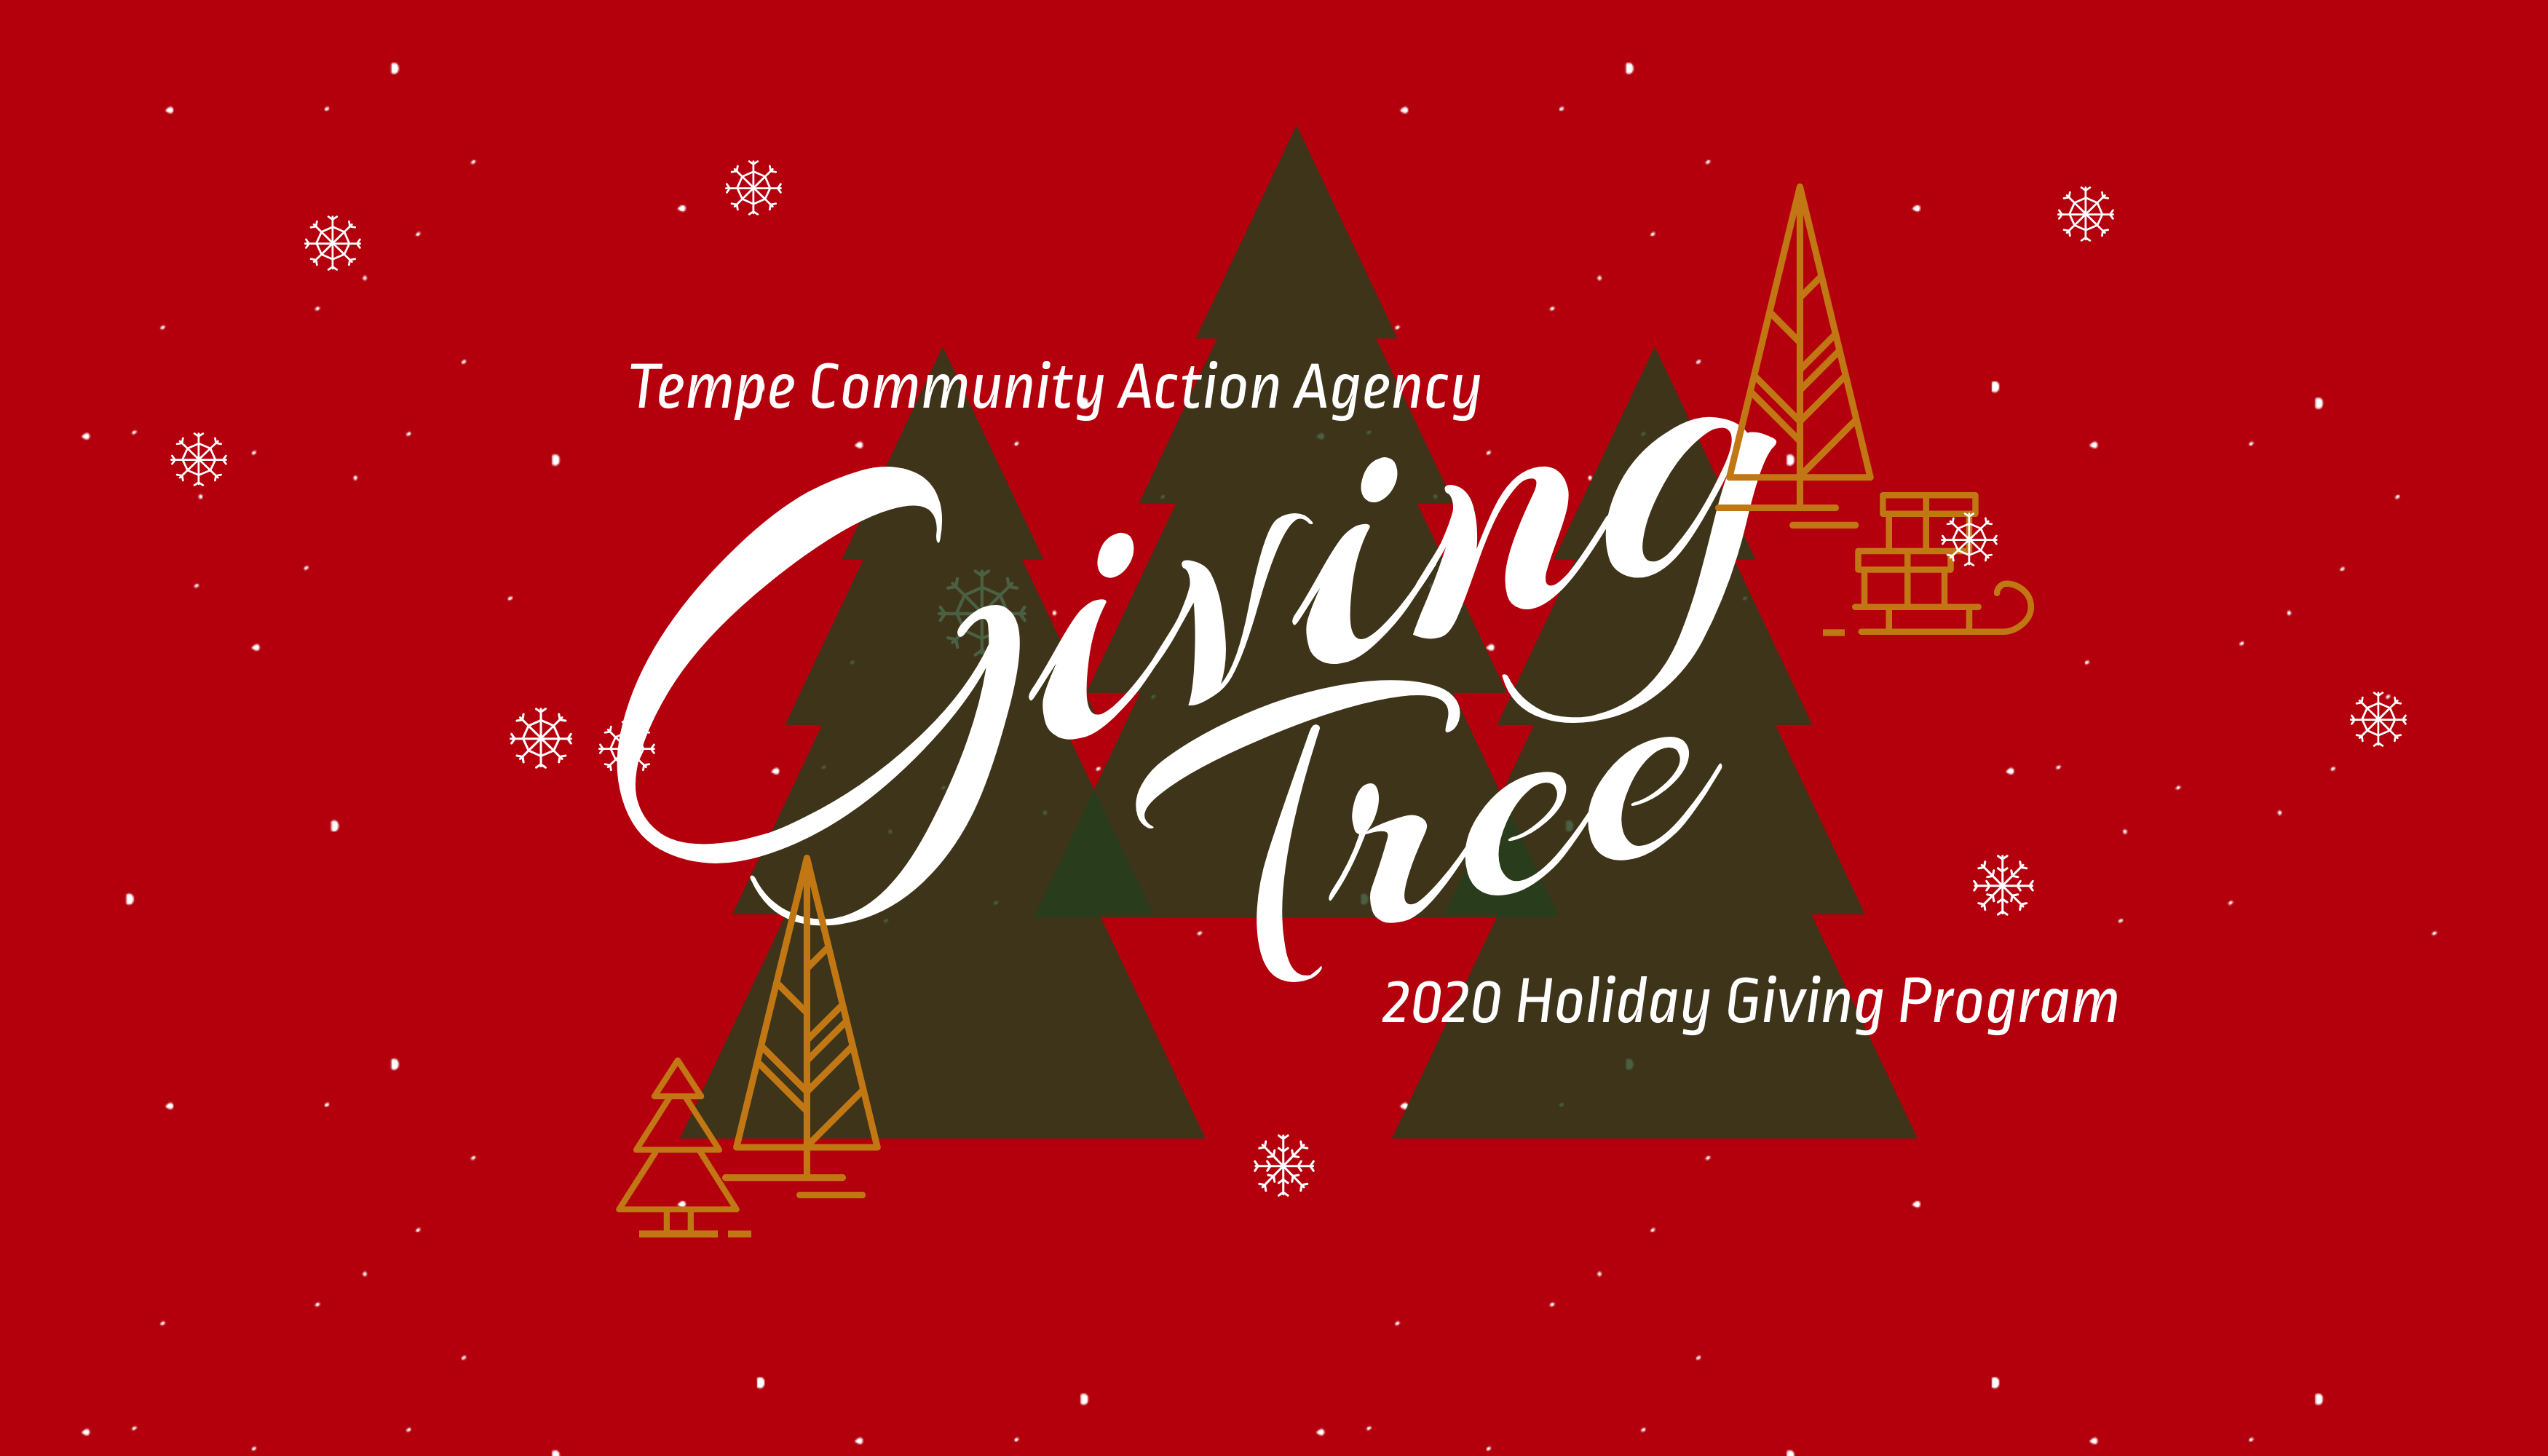 Annual Giving Tree Program